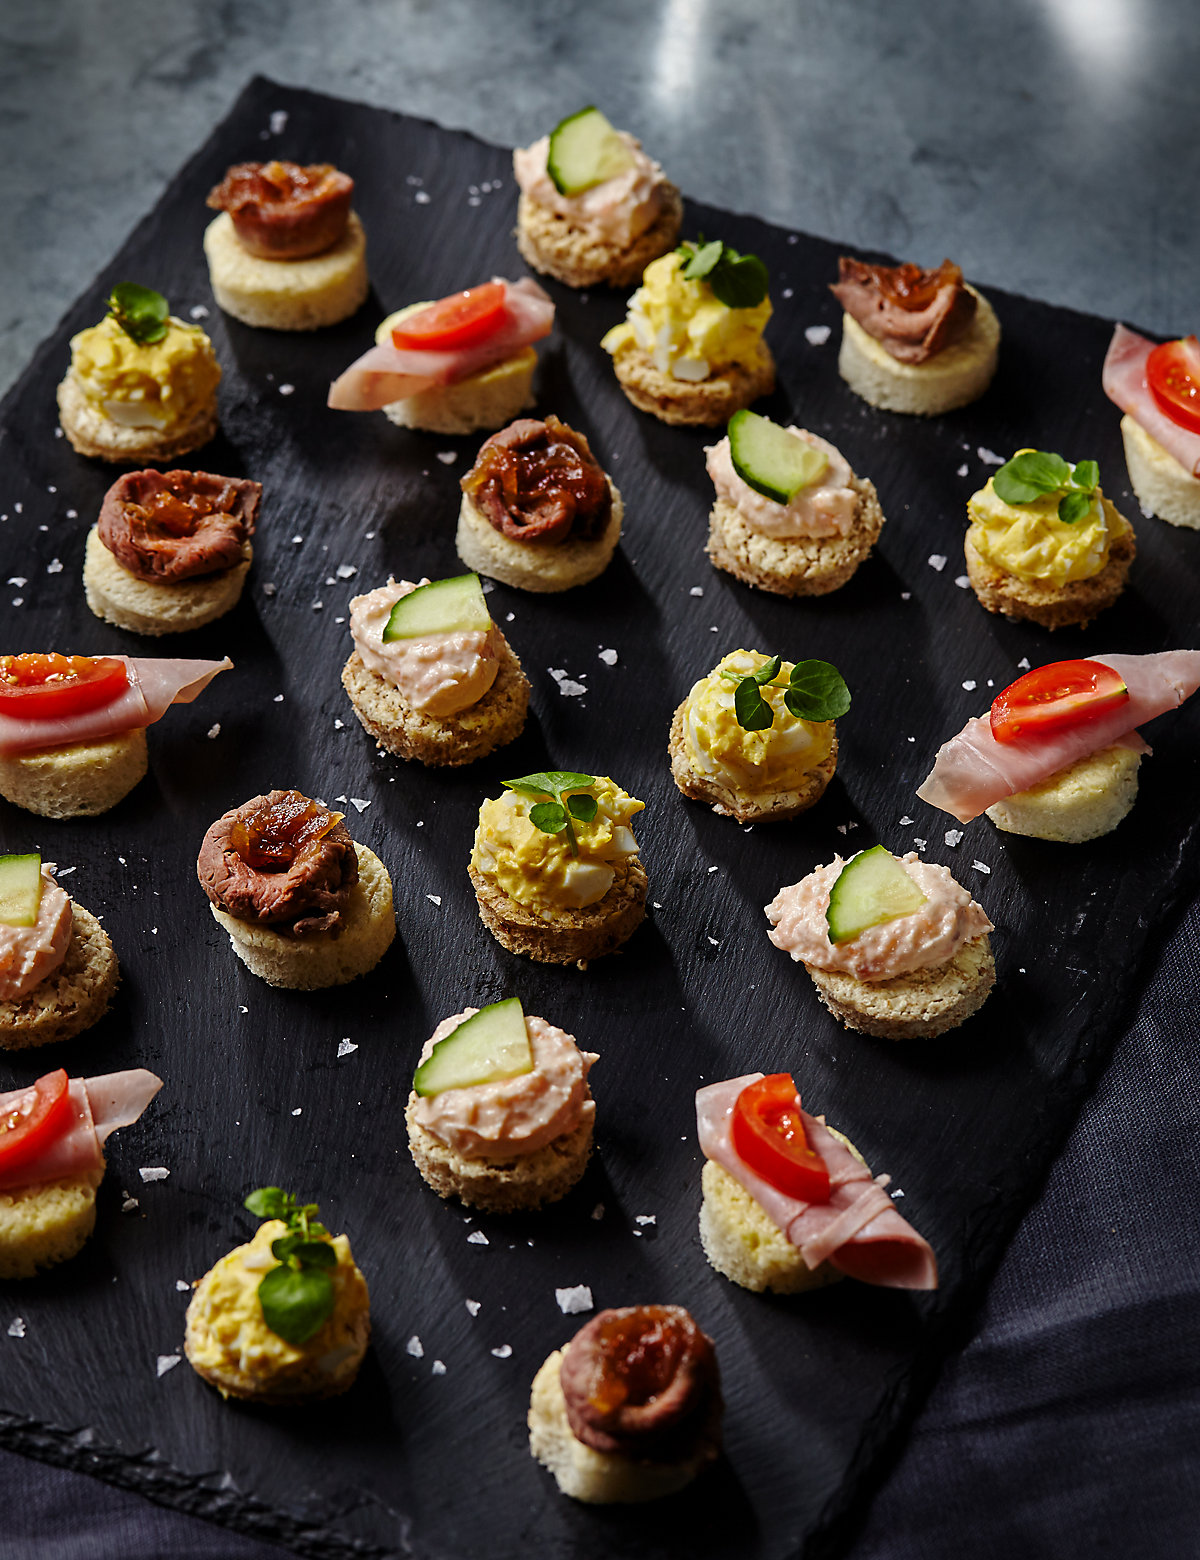 24 Mini Topped Canap&eacute Platter